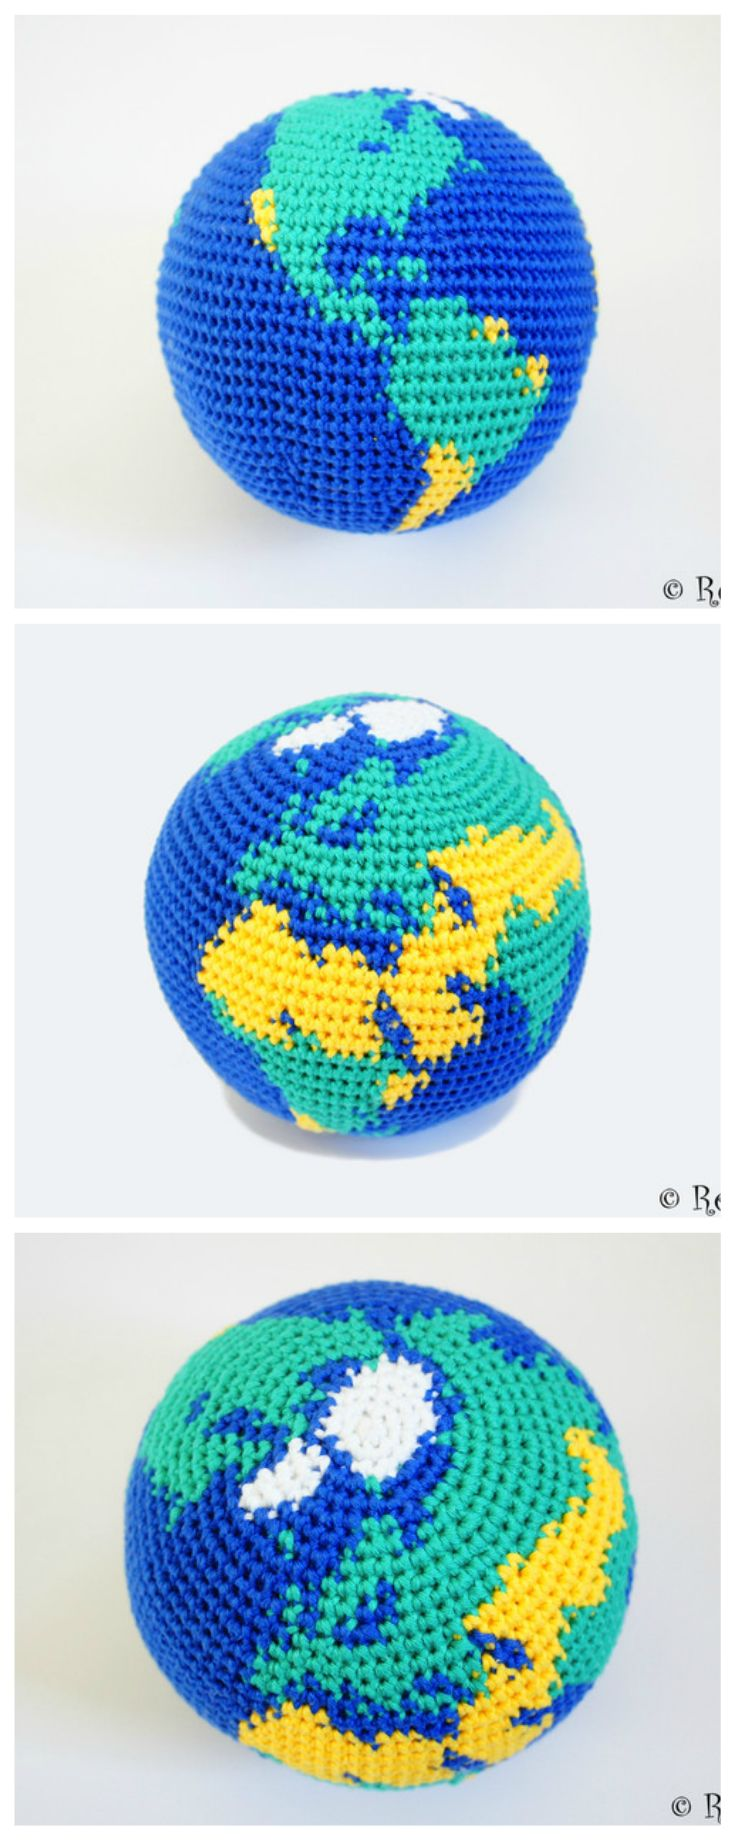 Häkelanleitung für deine eigene Weltkugel/ crochet instructions for your very own globe made by Renirumi via DaWanda.com